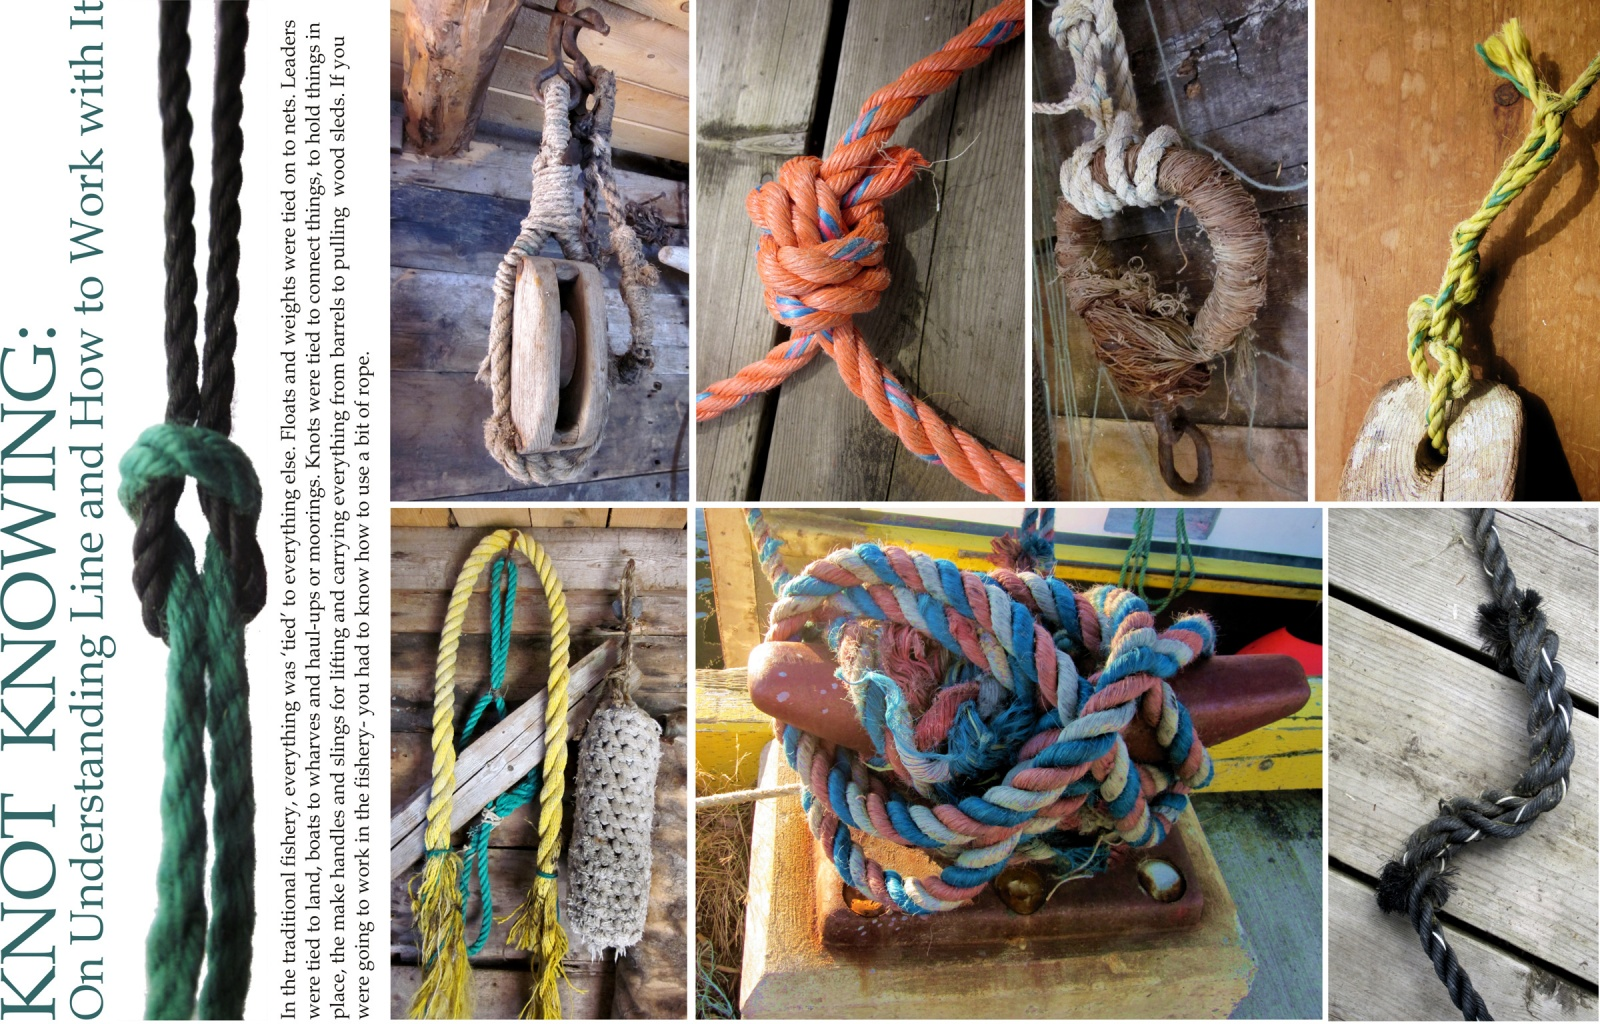 Knot Knowing: On Understanding Line and How to Work with It